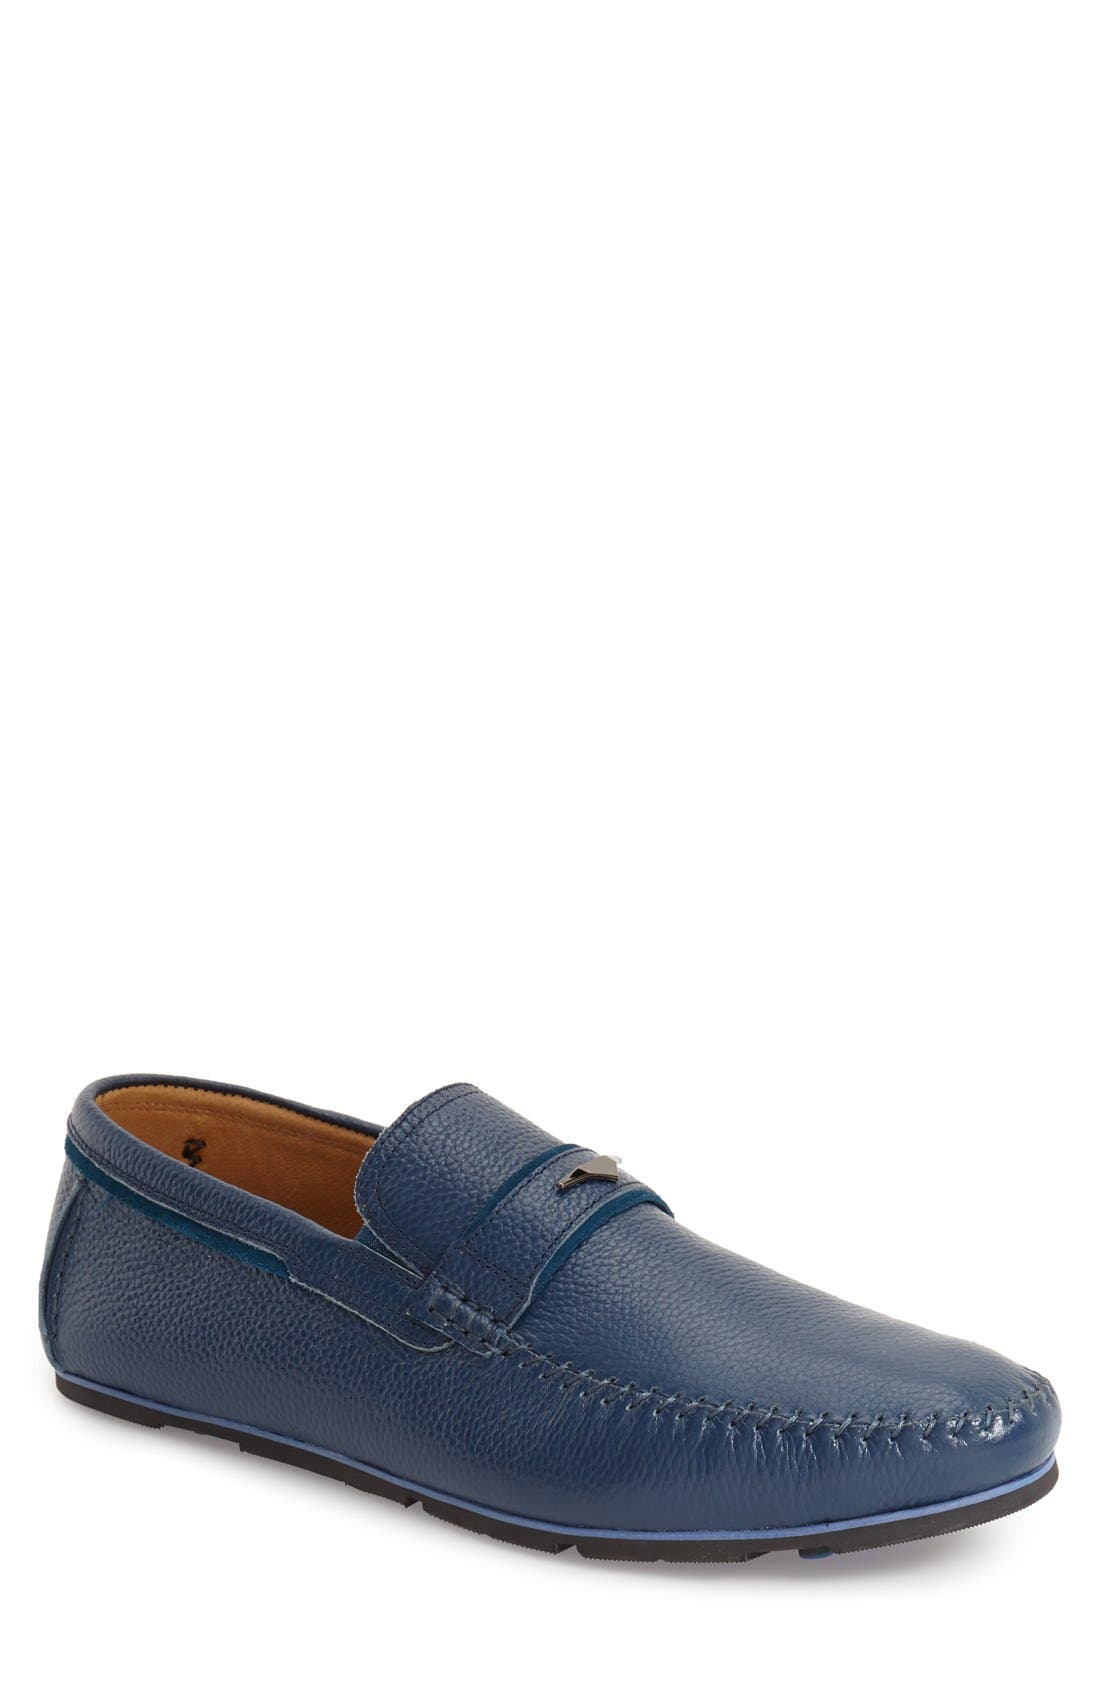 Leather Loafer,                             Main thumbnail 1, color,                             400